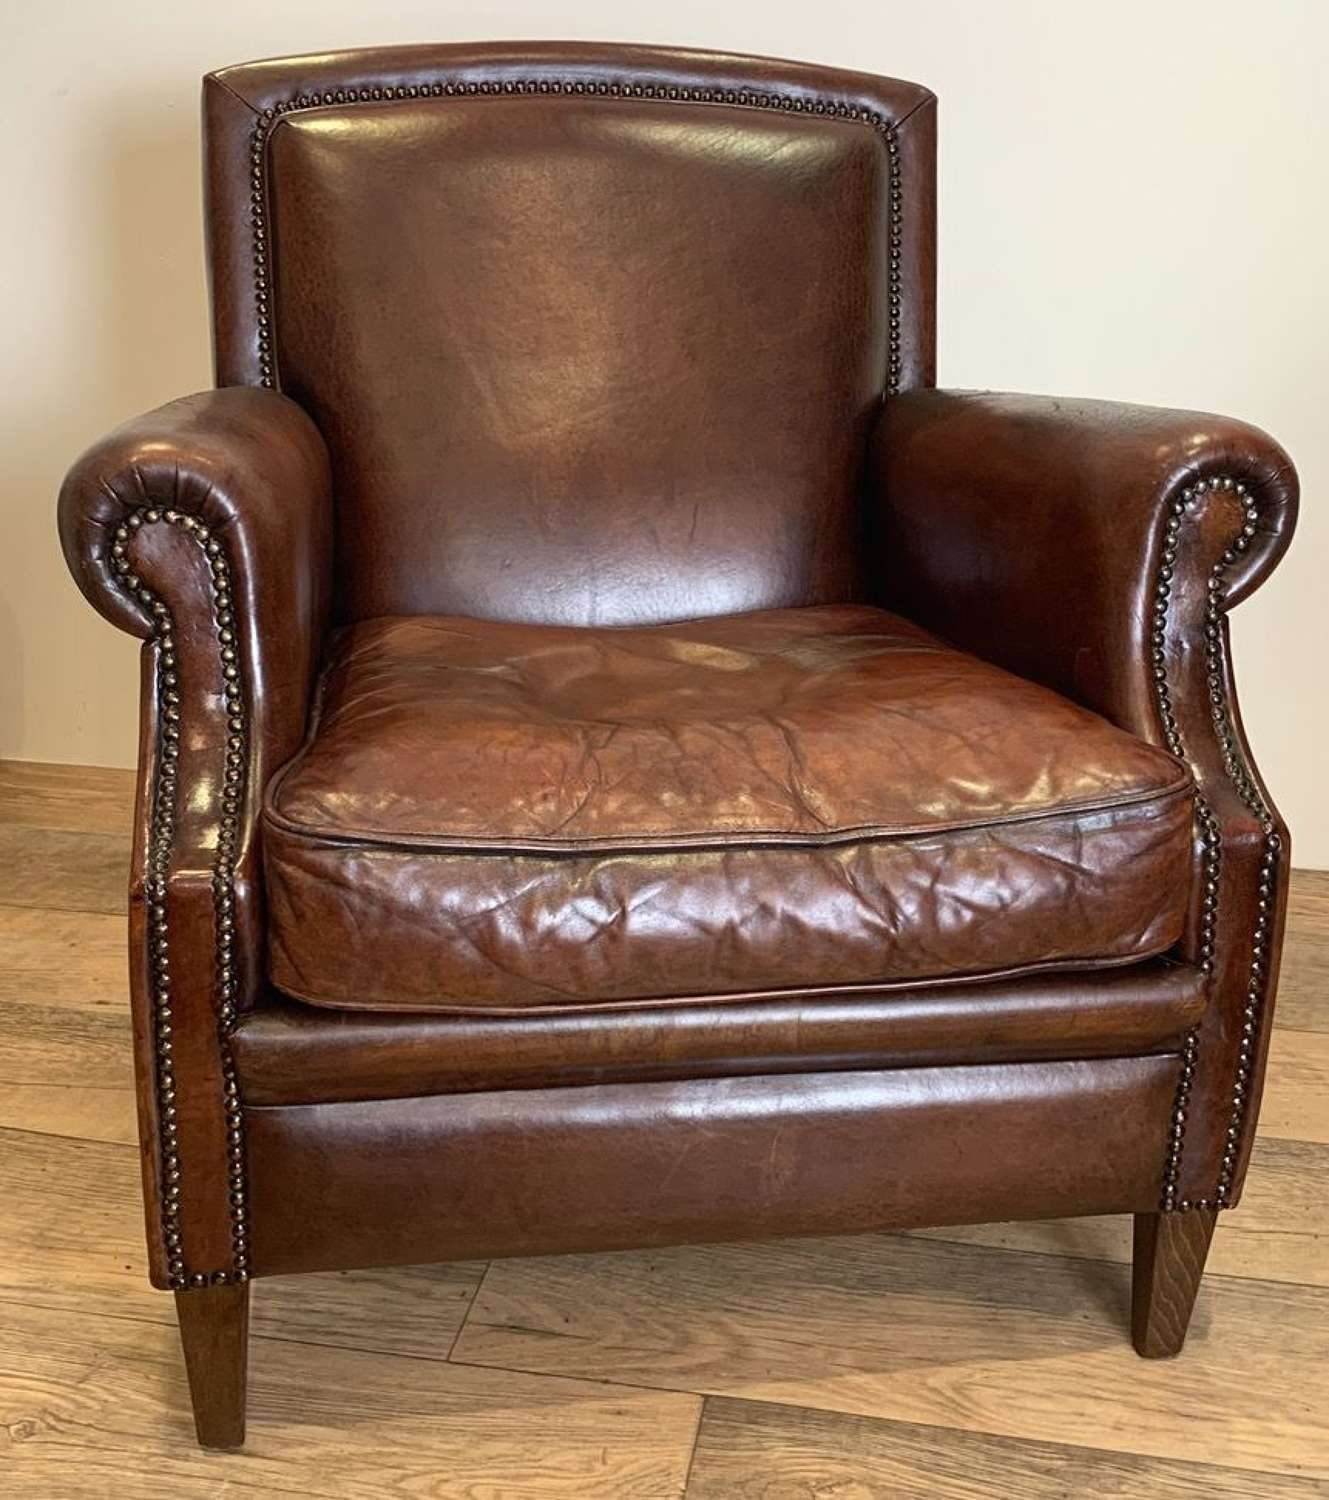 STUDDED DUTCH LEATHER ARMCHAIR in Furniture